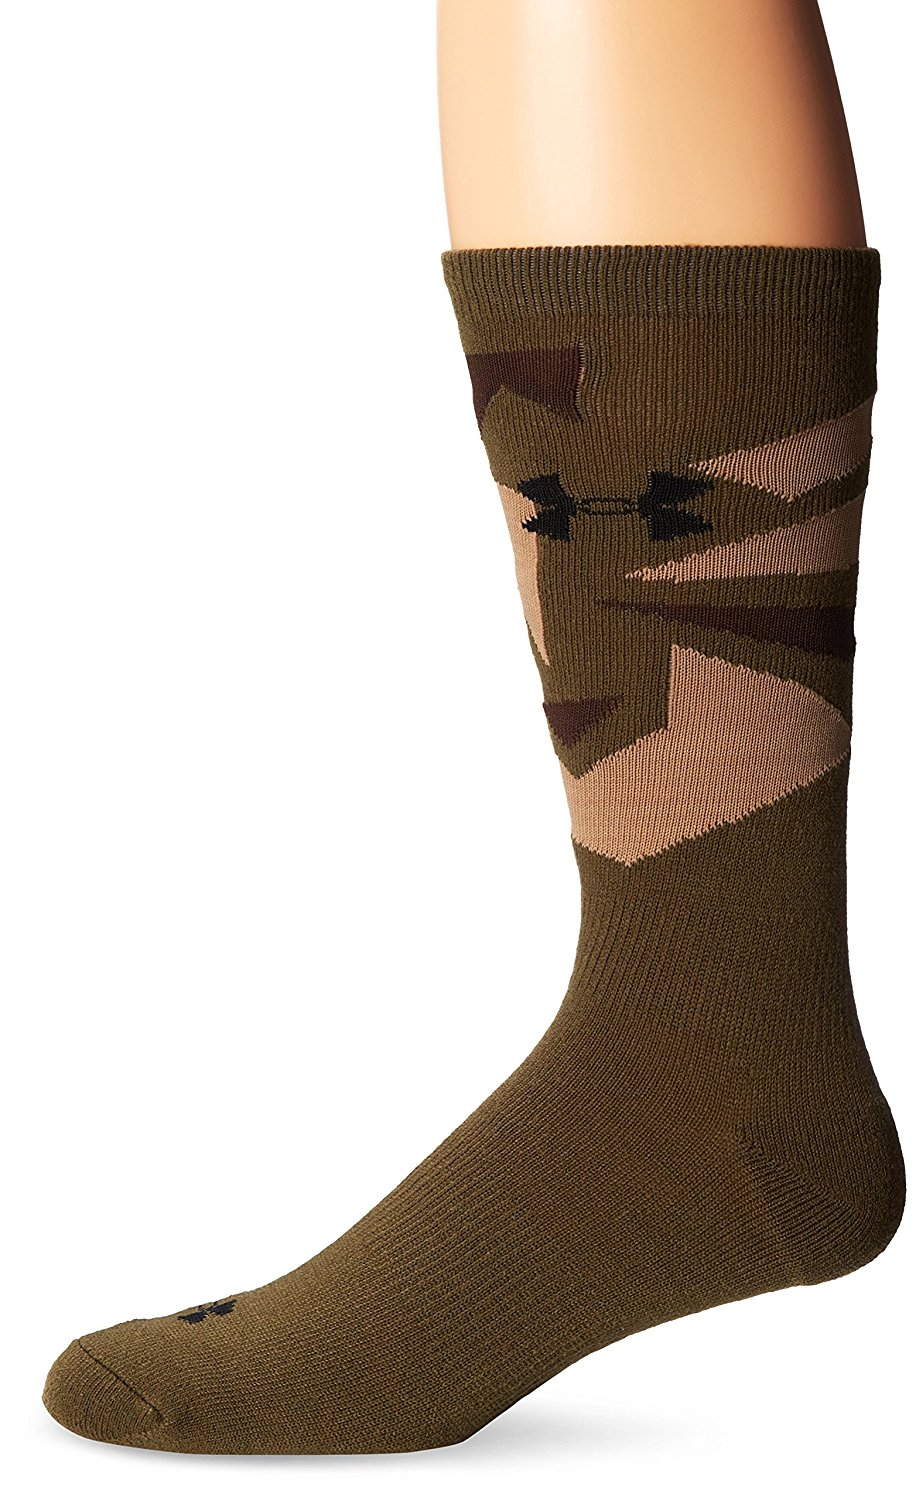 Under Armour Mens Football Crew Socks Single Pair